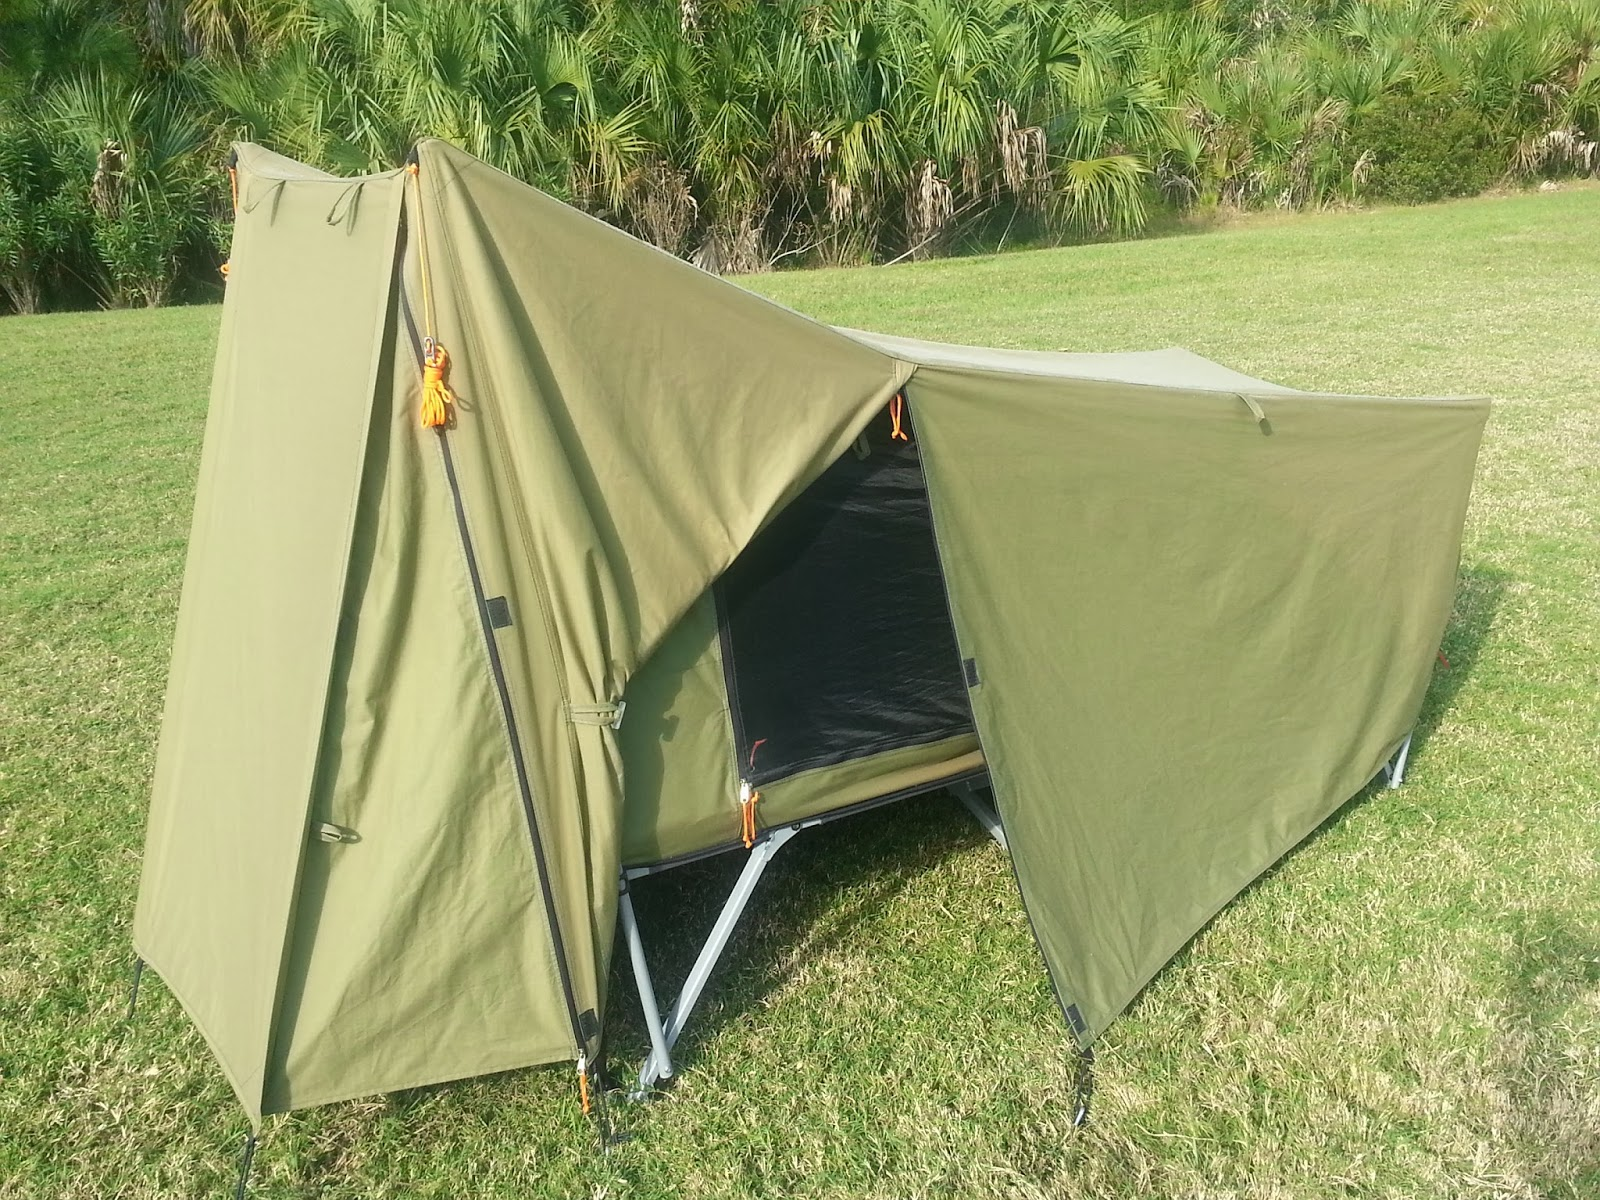 Jet Tent Bunker XL Tent Cot by OzTent & Family Tent Camping : Jet Tent Bunker XL Tent Cot by OzTent